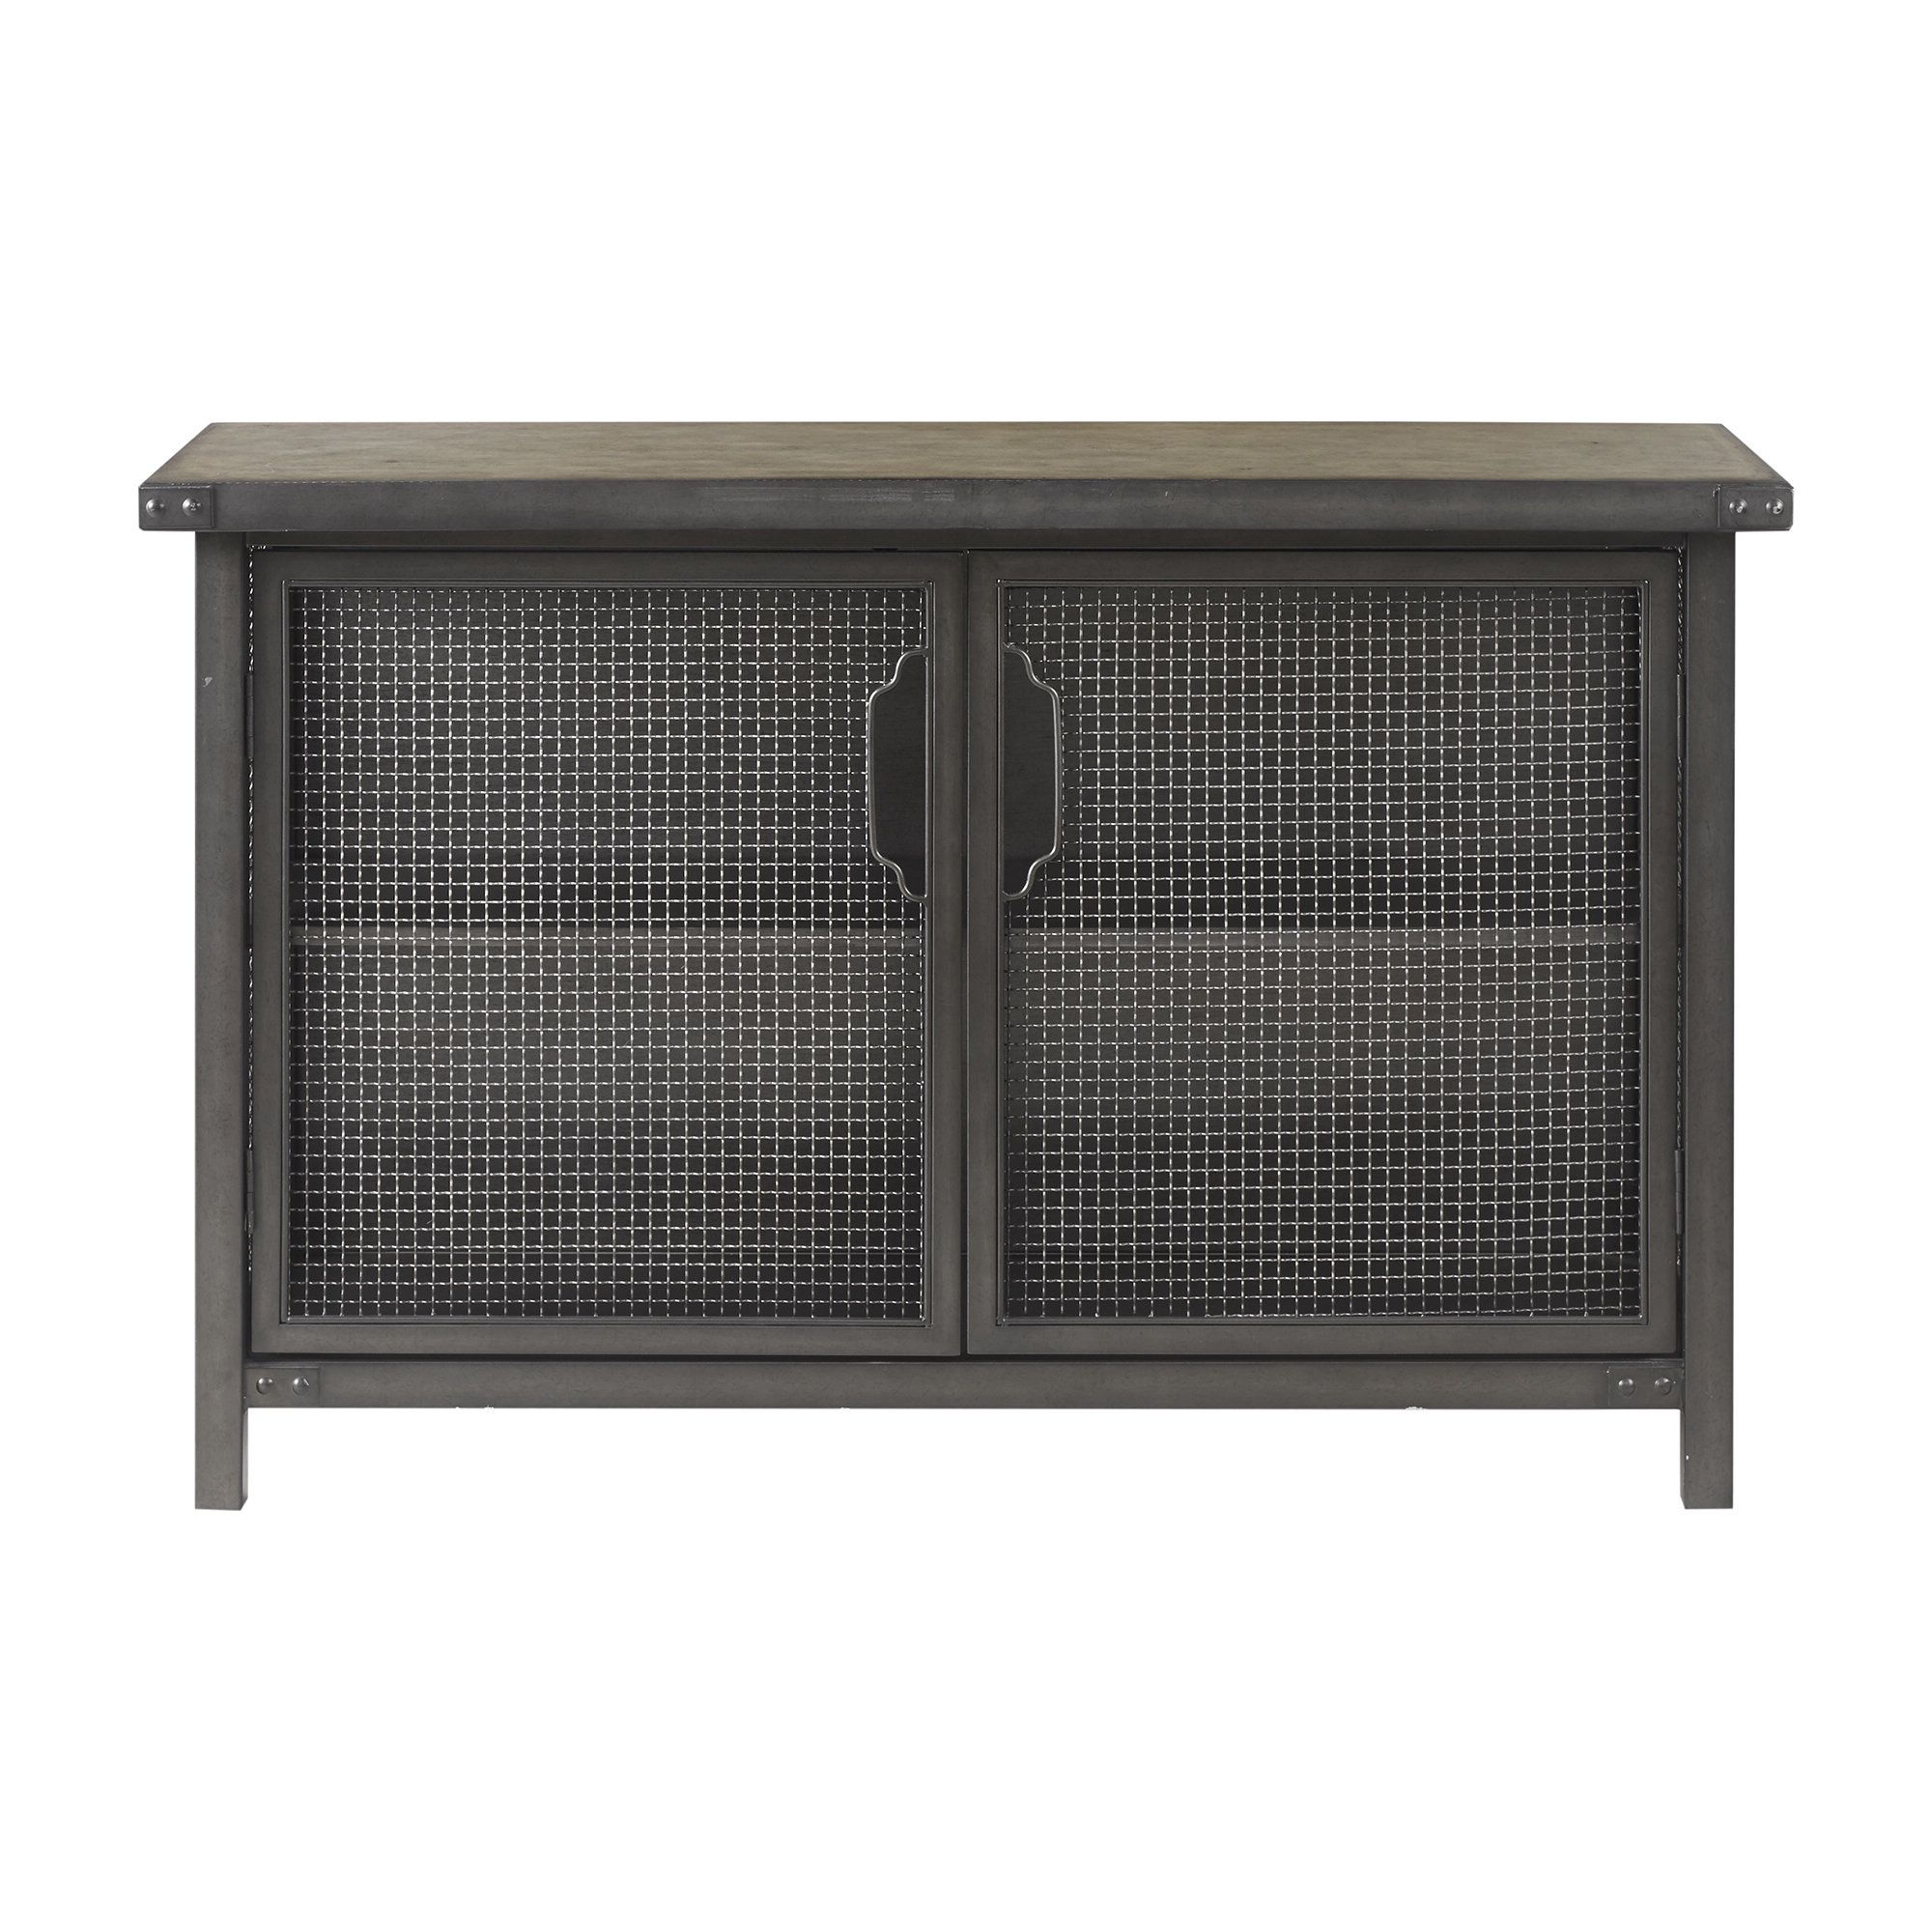 Casolino Sideboard | Dawn | Sideboard, Sideboard Cabinet Regarding Mauzy Sideboards (View 4 of 20)